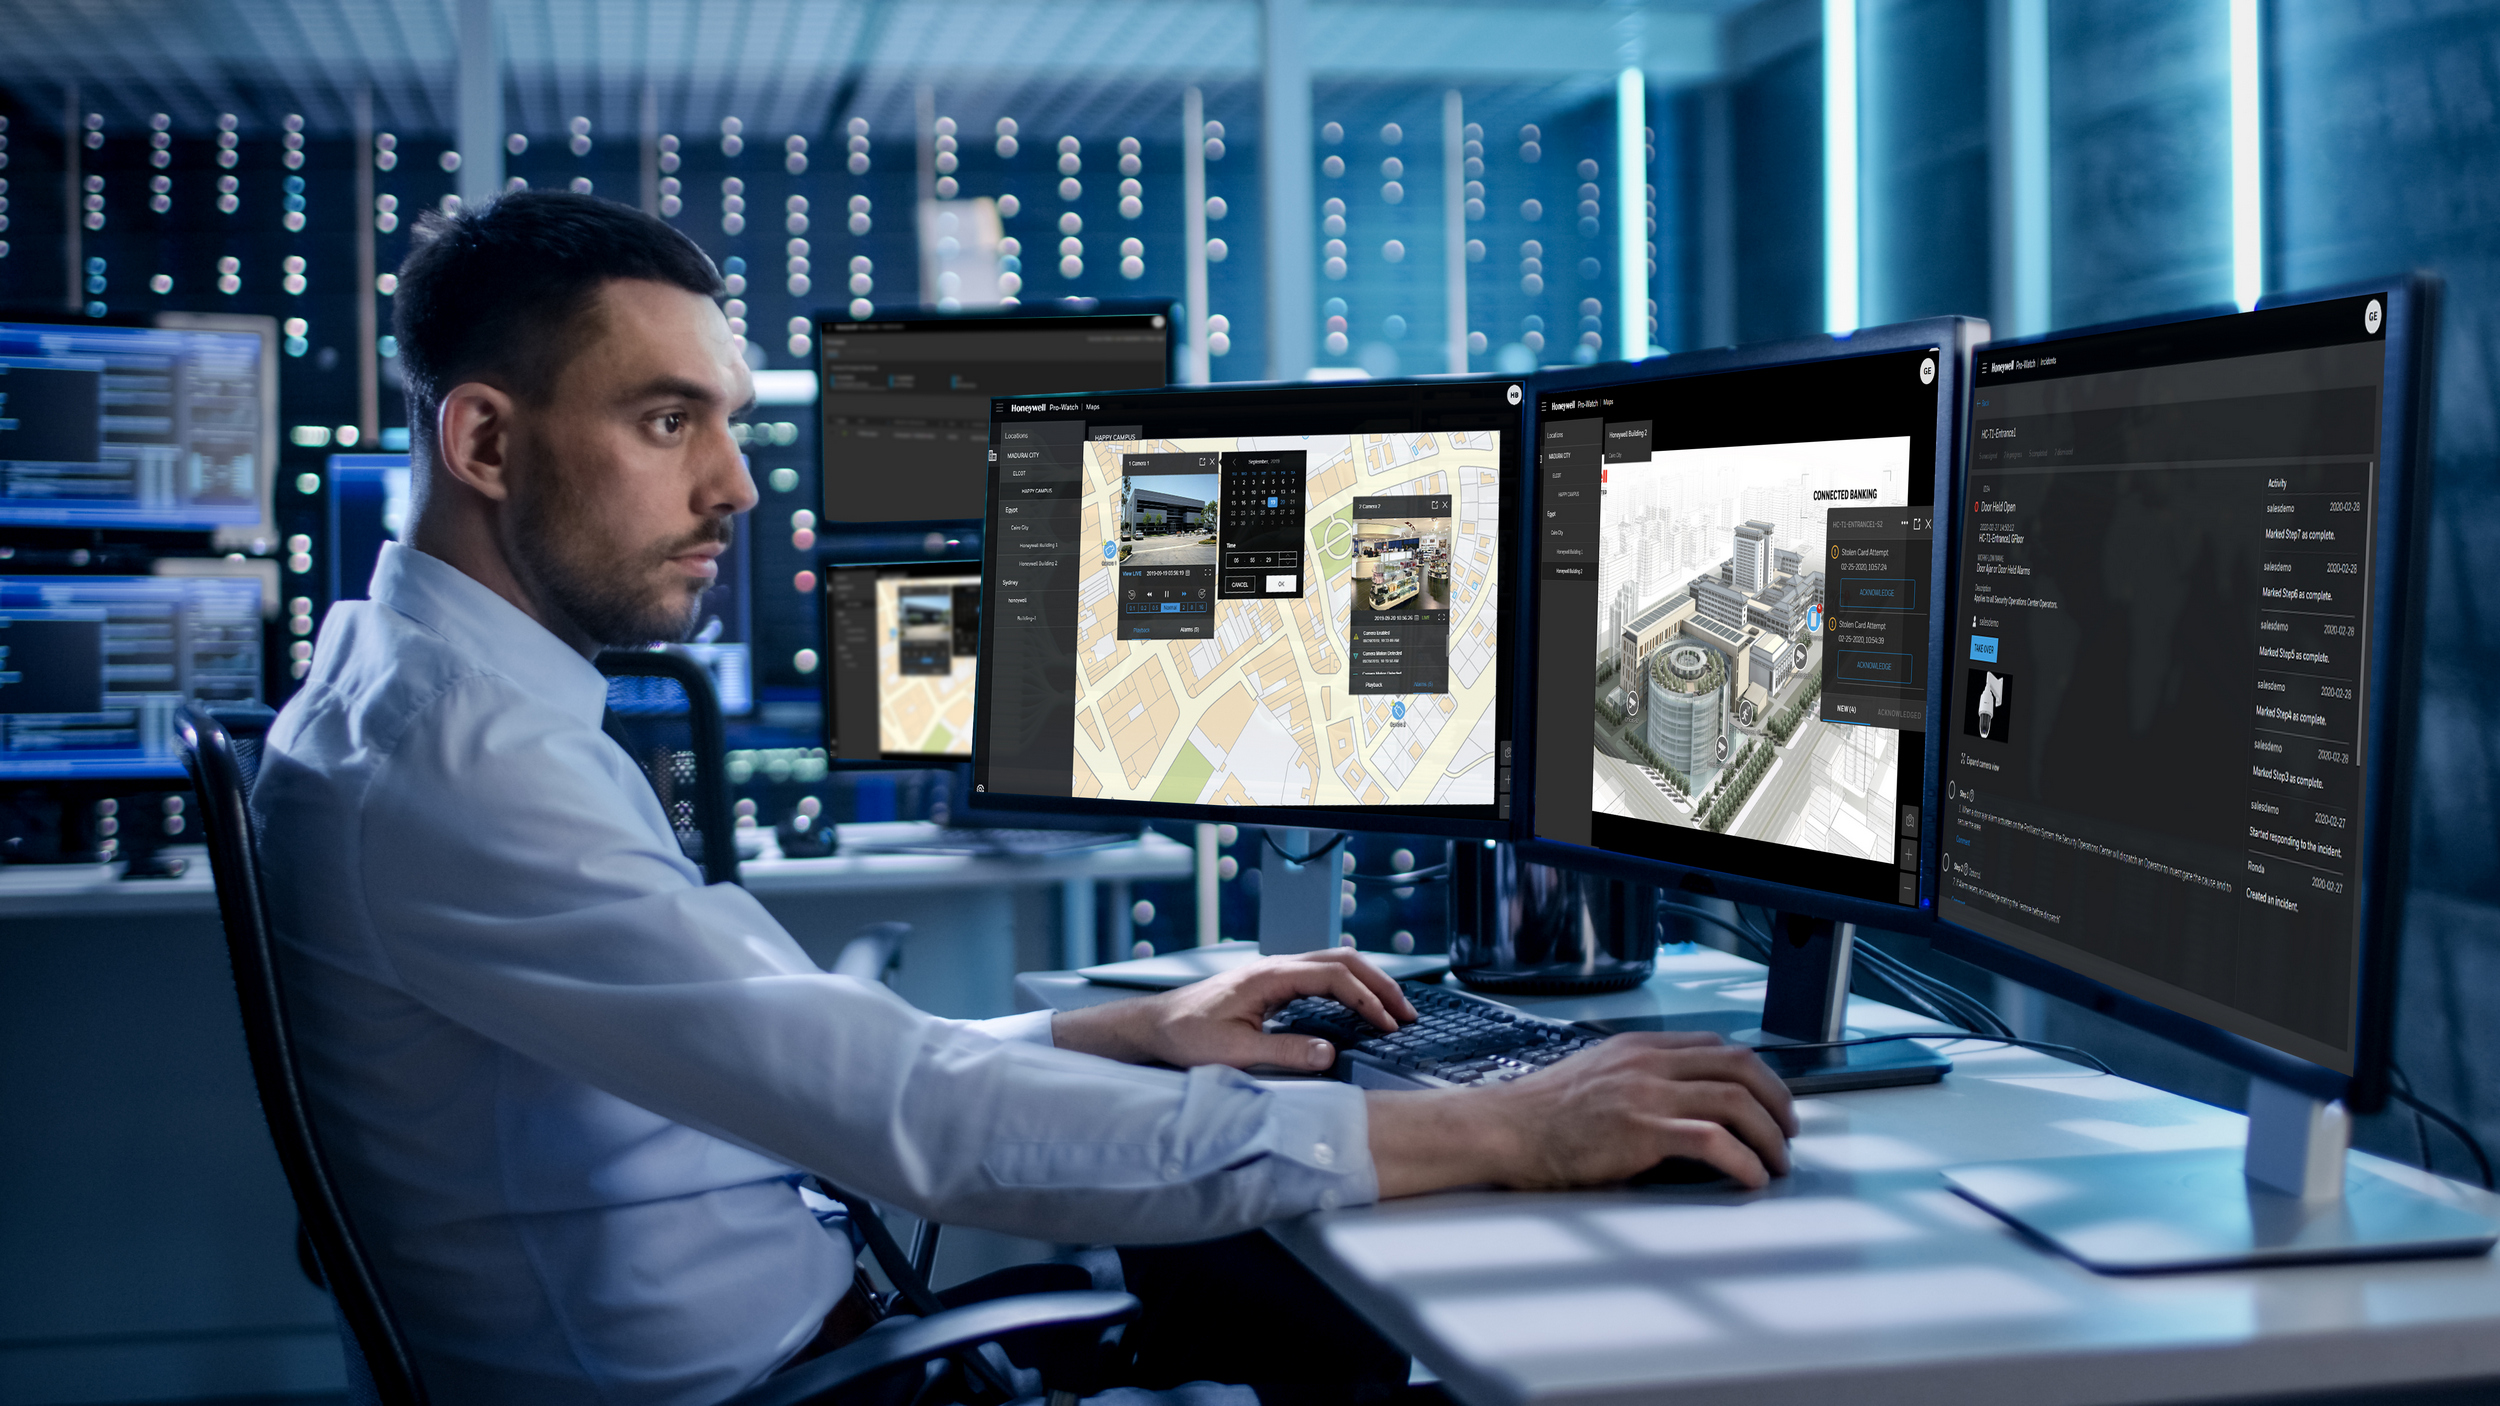 Honeywell launches security system that provides users with complete situational awareness